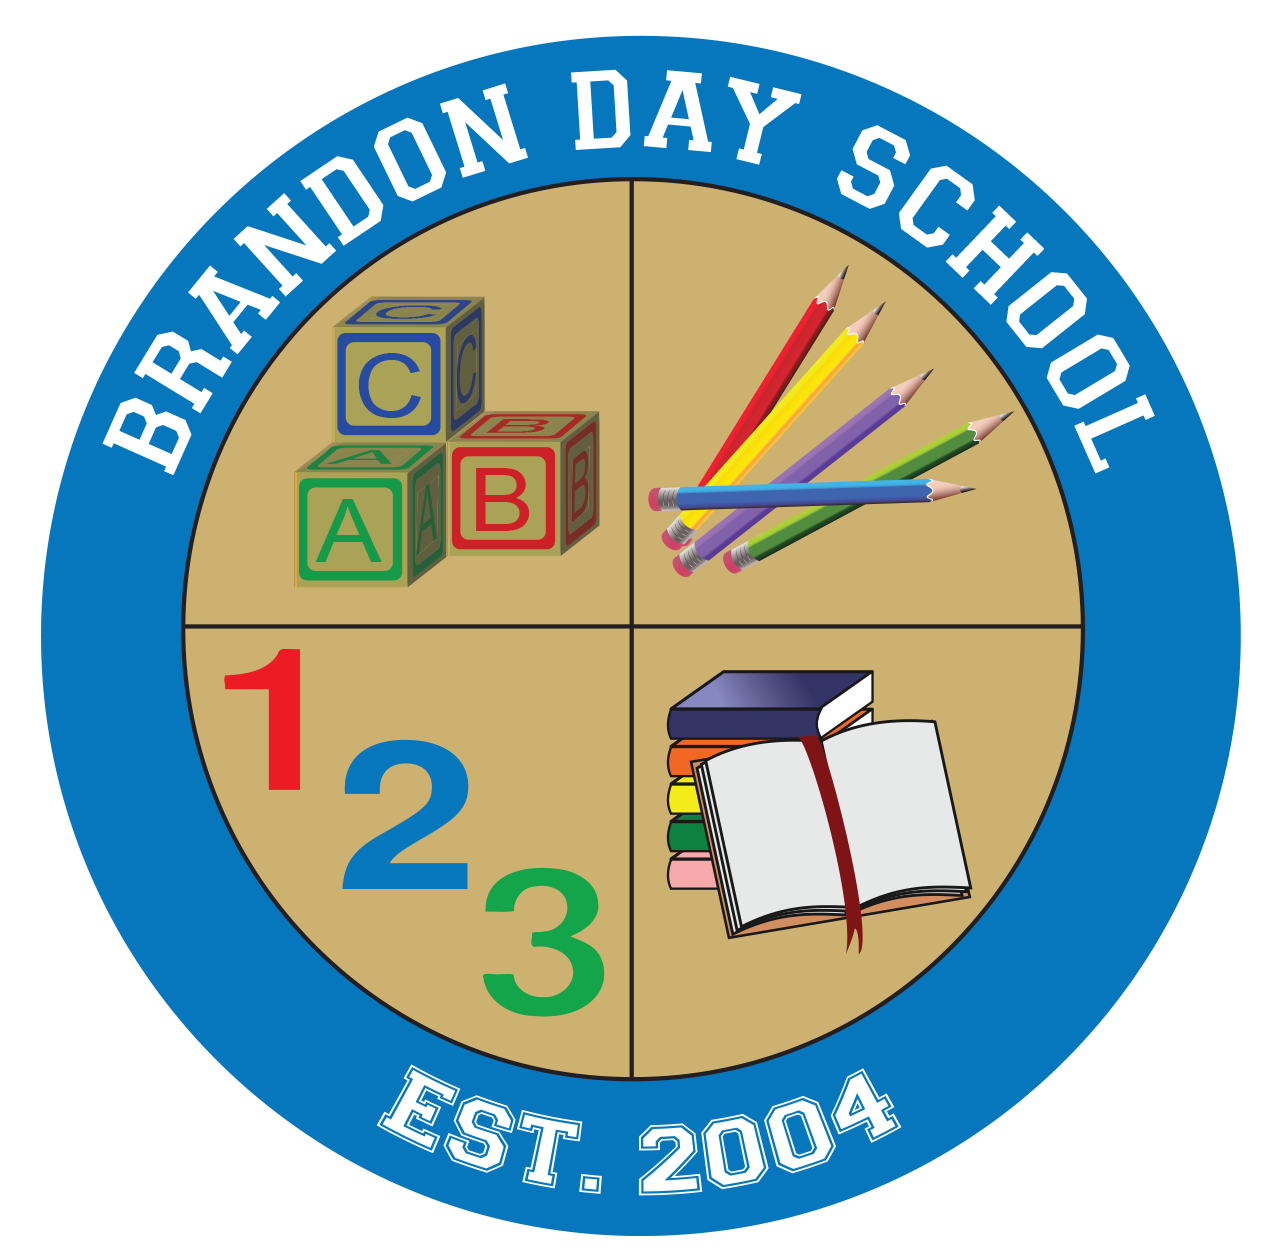 Brandon Day School